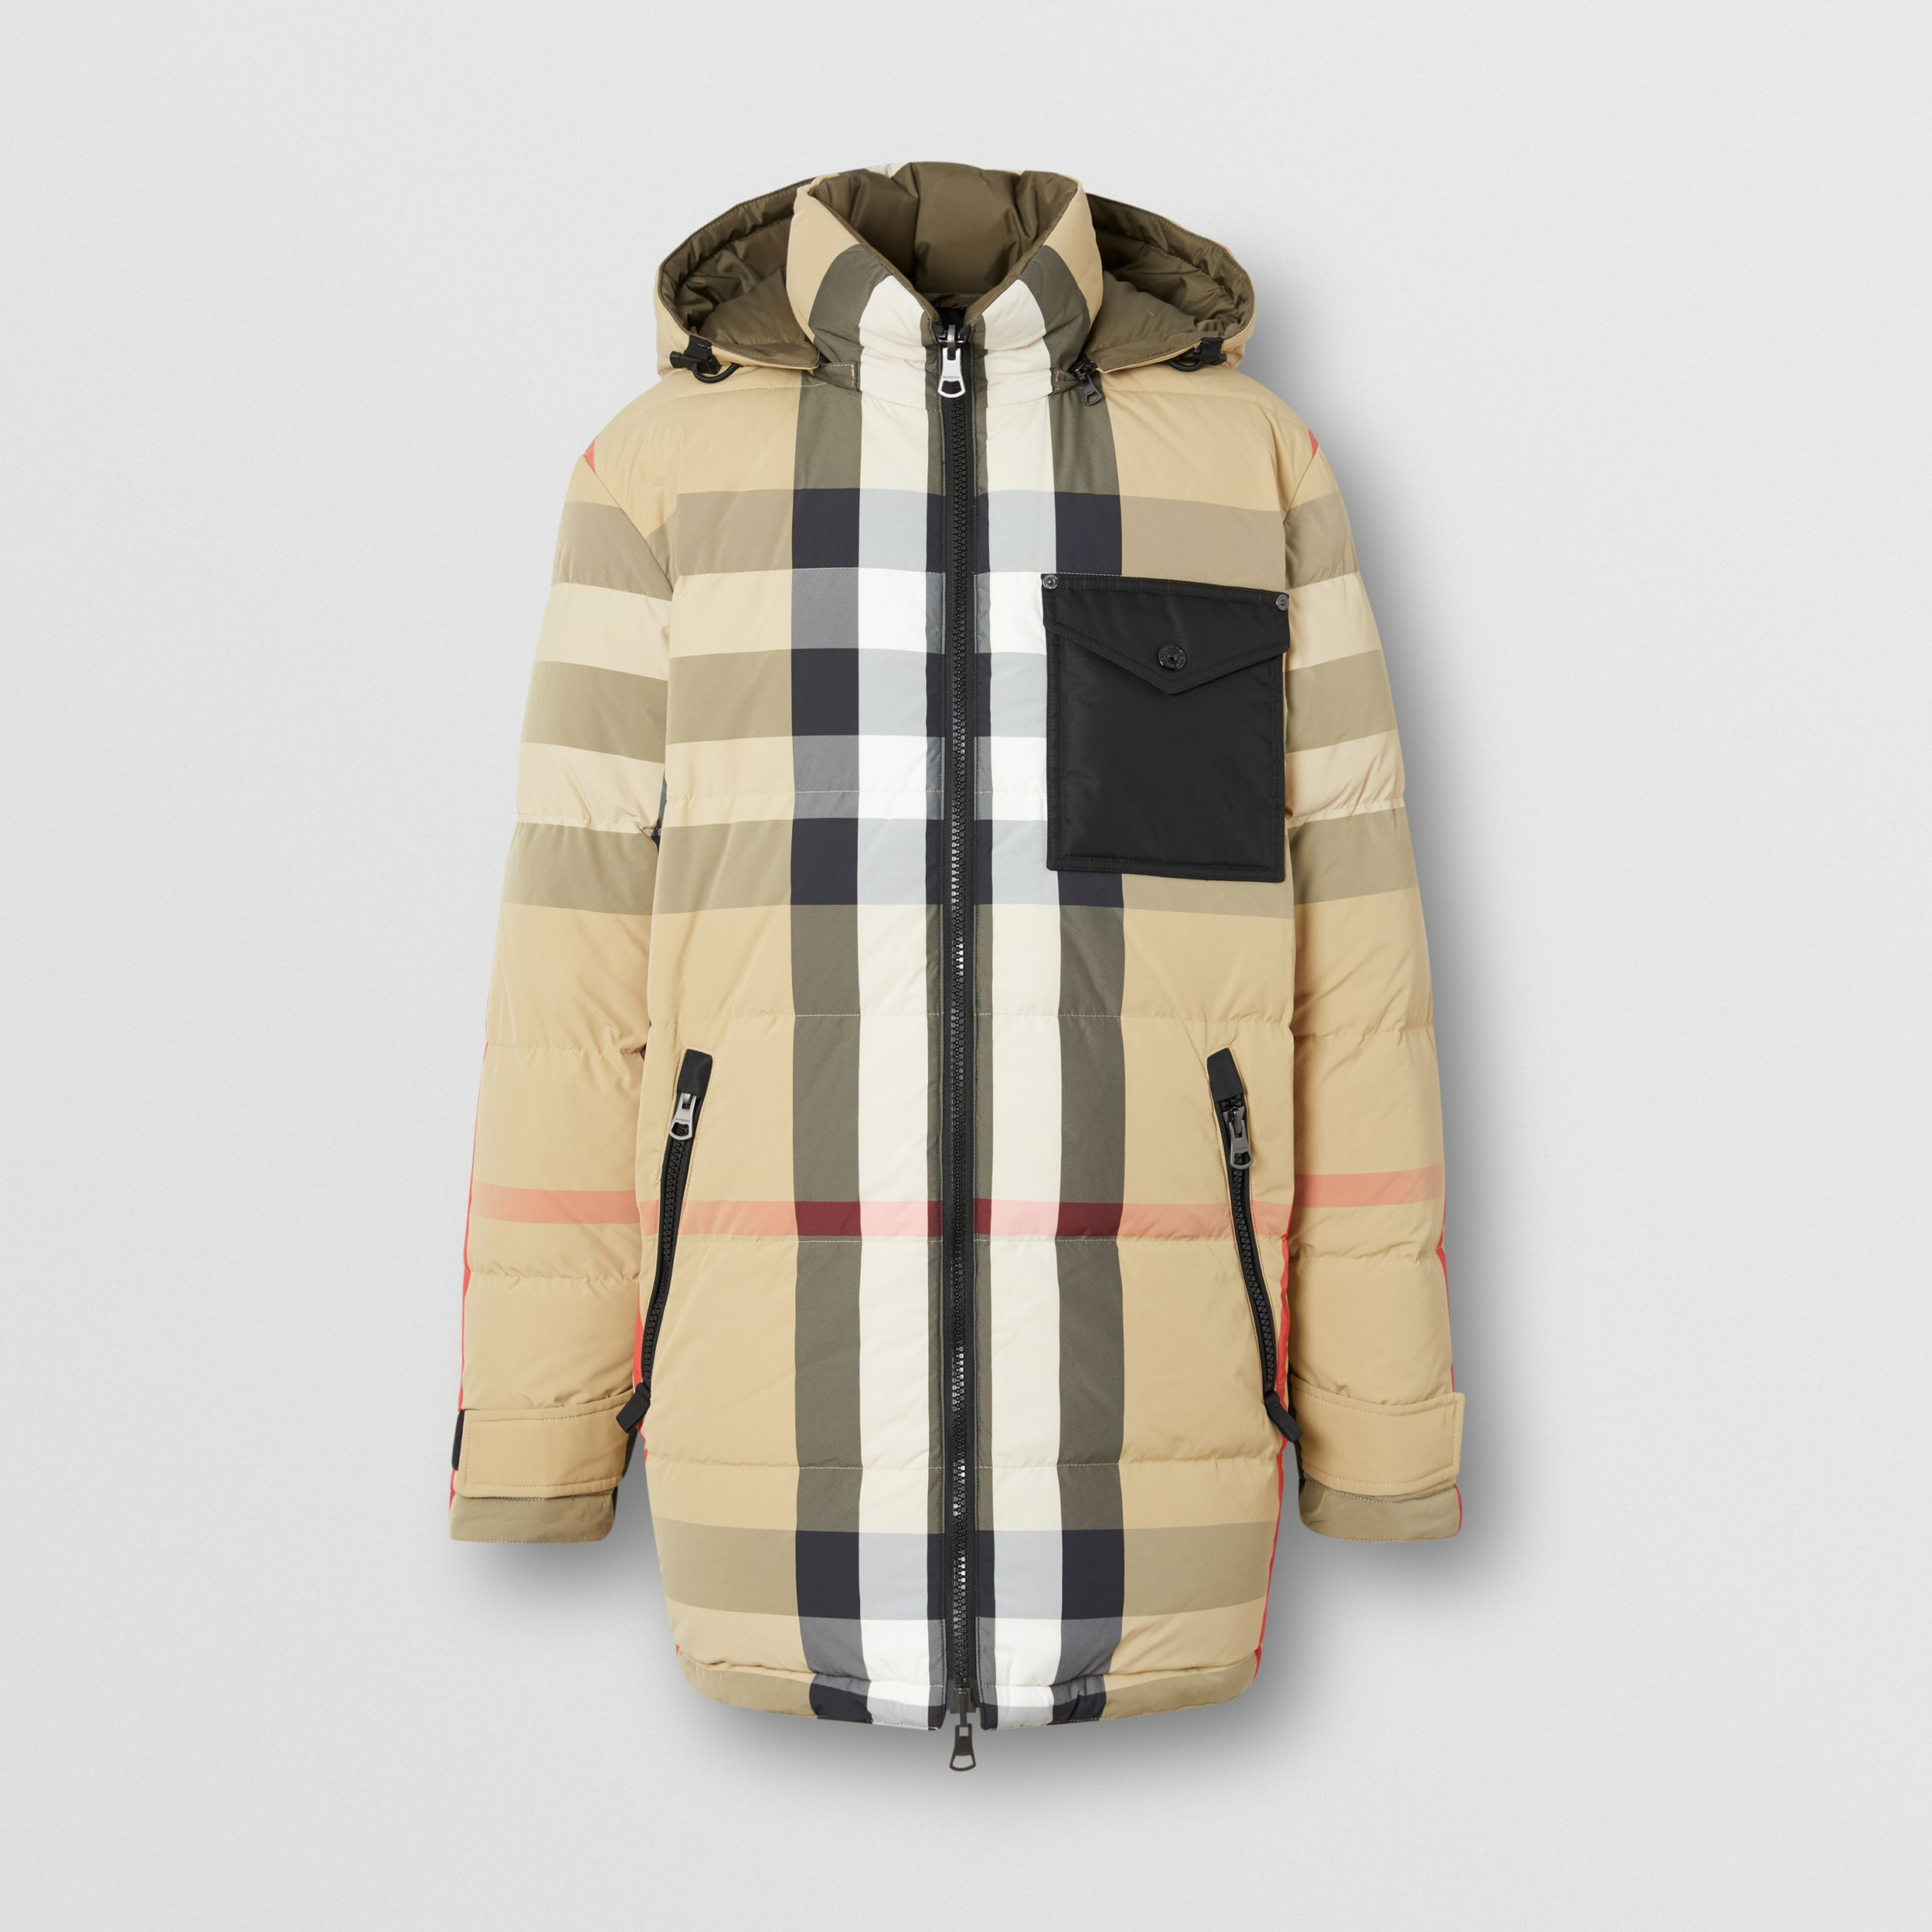 Reversible Check Recycled Nylon Puffer Jacket in Archive Beige/olive - Men | Burberry - 4